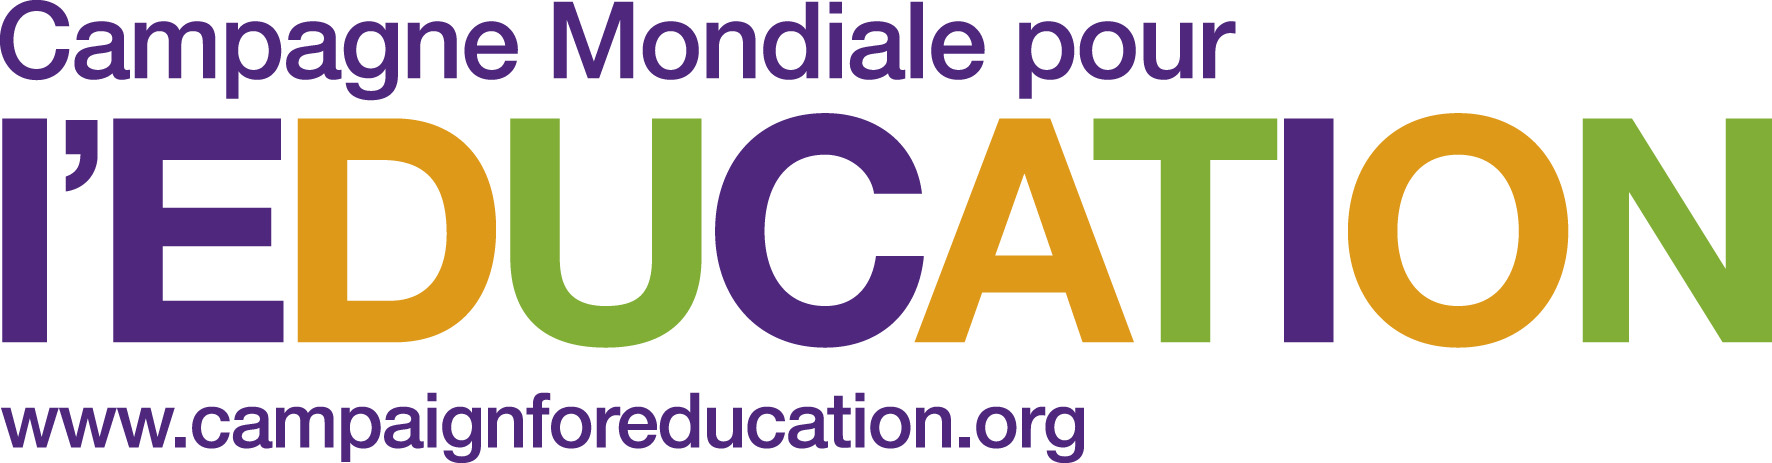 logo for Global Campaign for Education